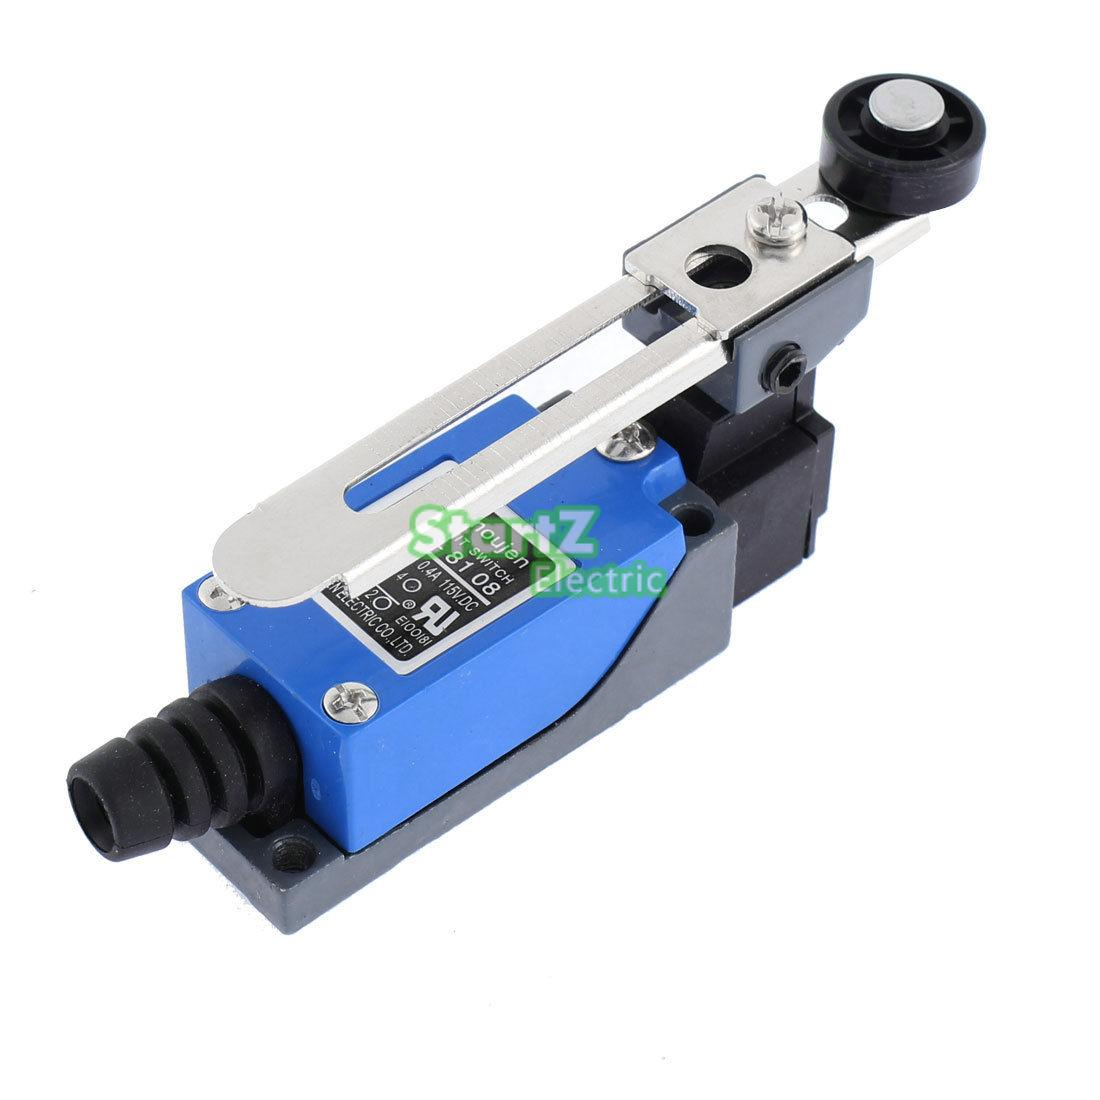 Buy Limit Switch Cnc And Get Free Shipping On Lever Actuator Microswitch Spdt 5a Micro Ebay